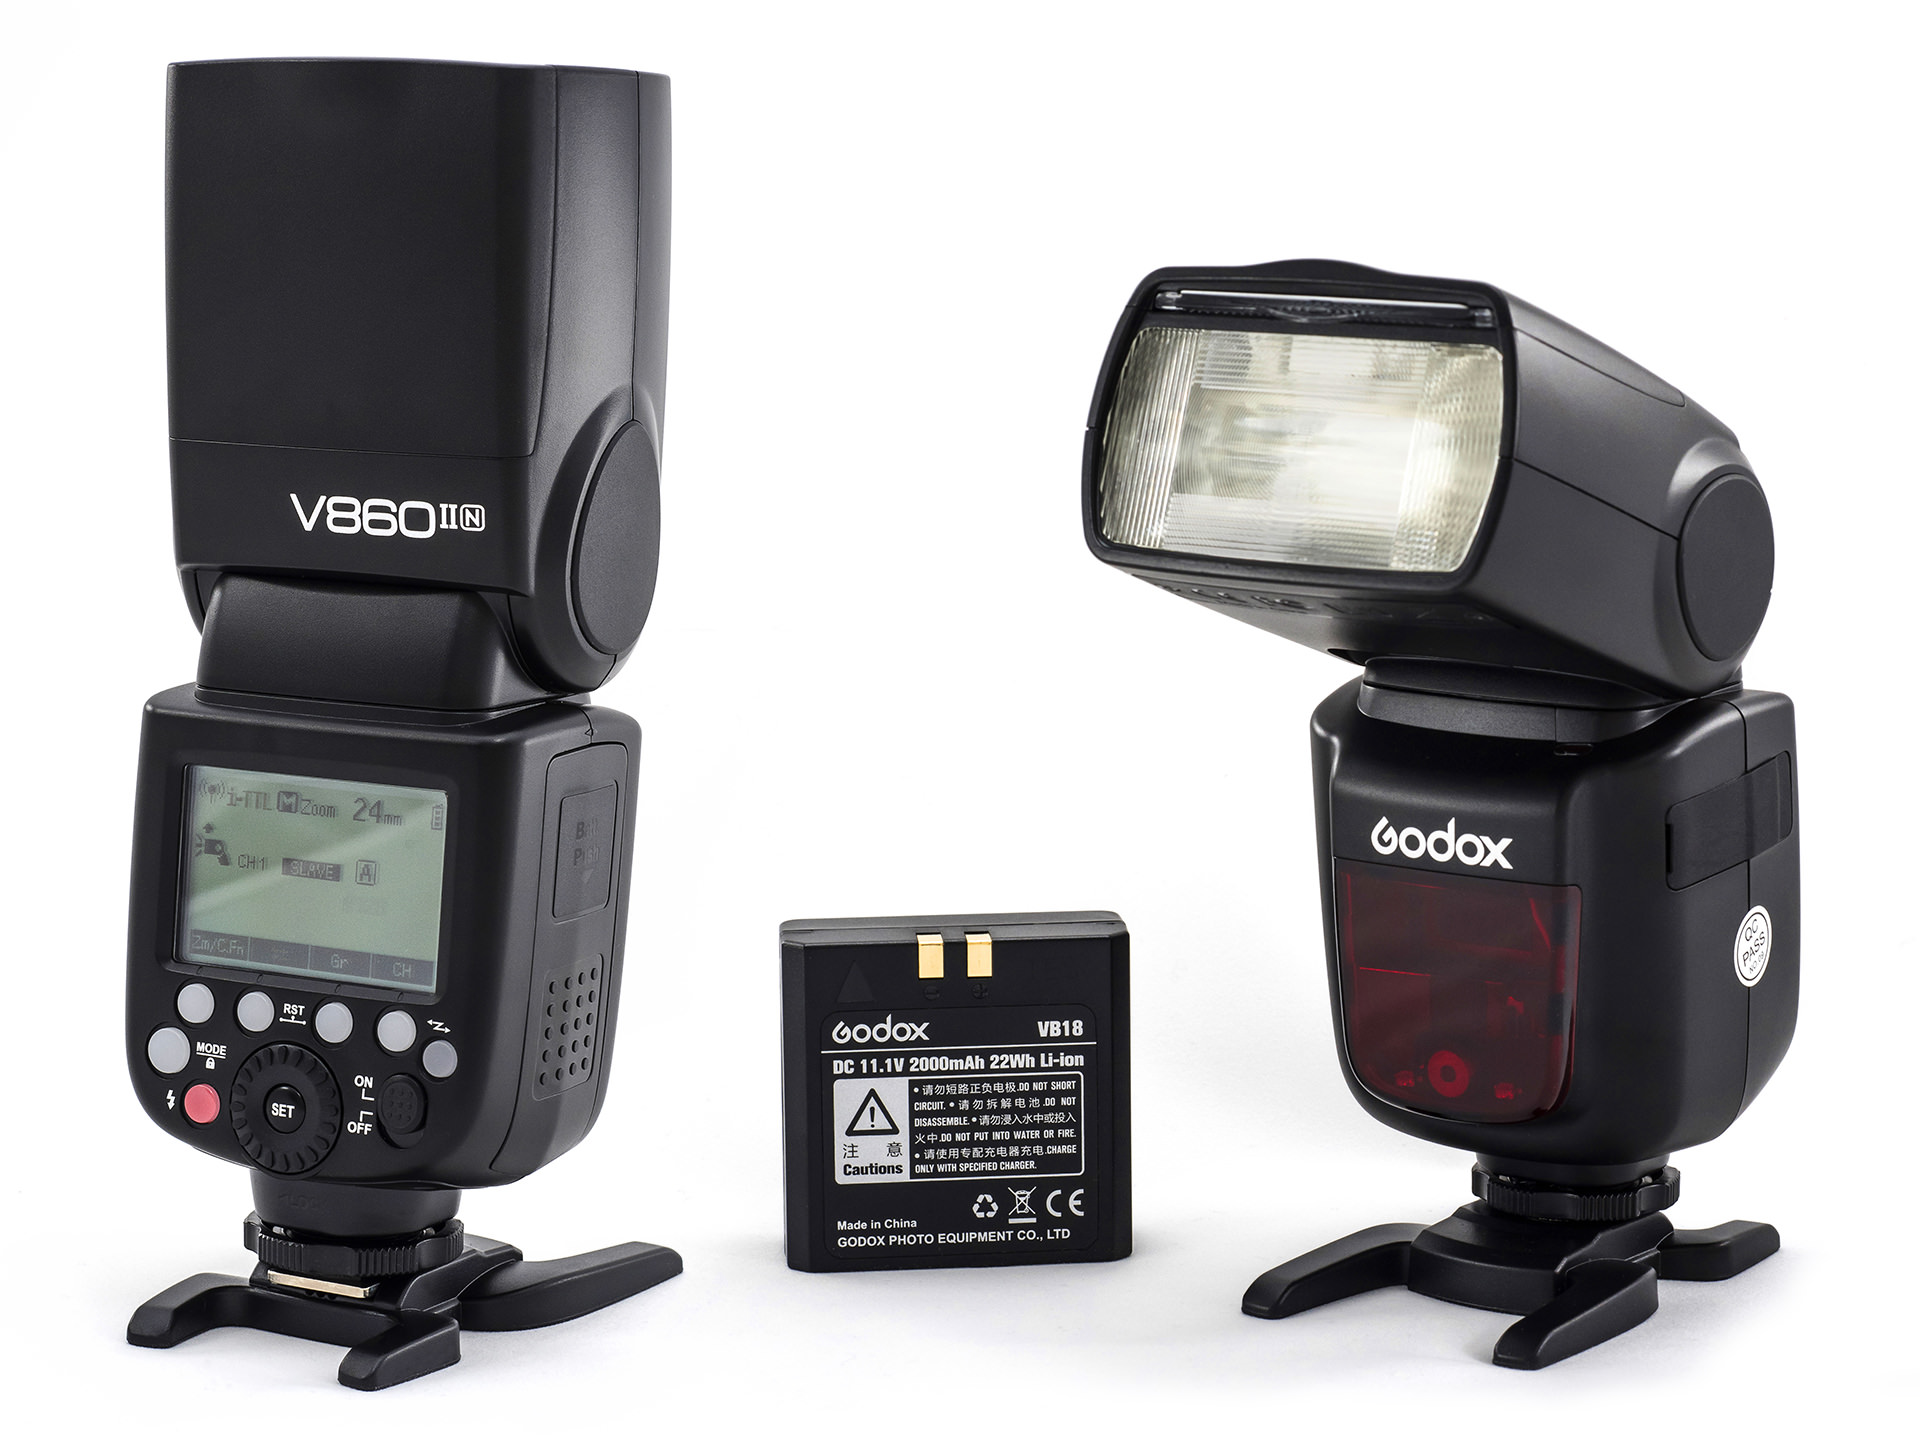 flash review the godox ving v860 ii is a great value wireless